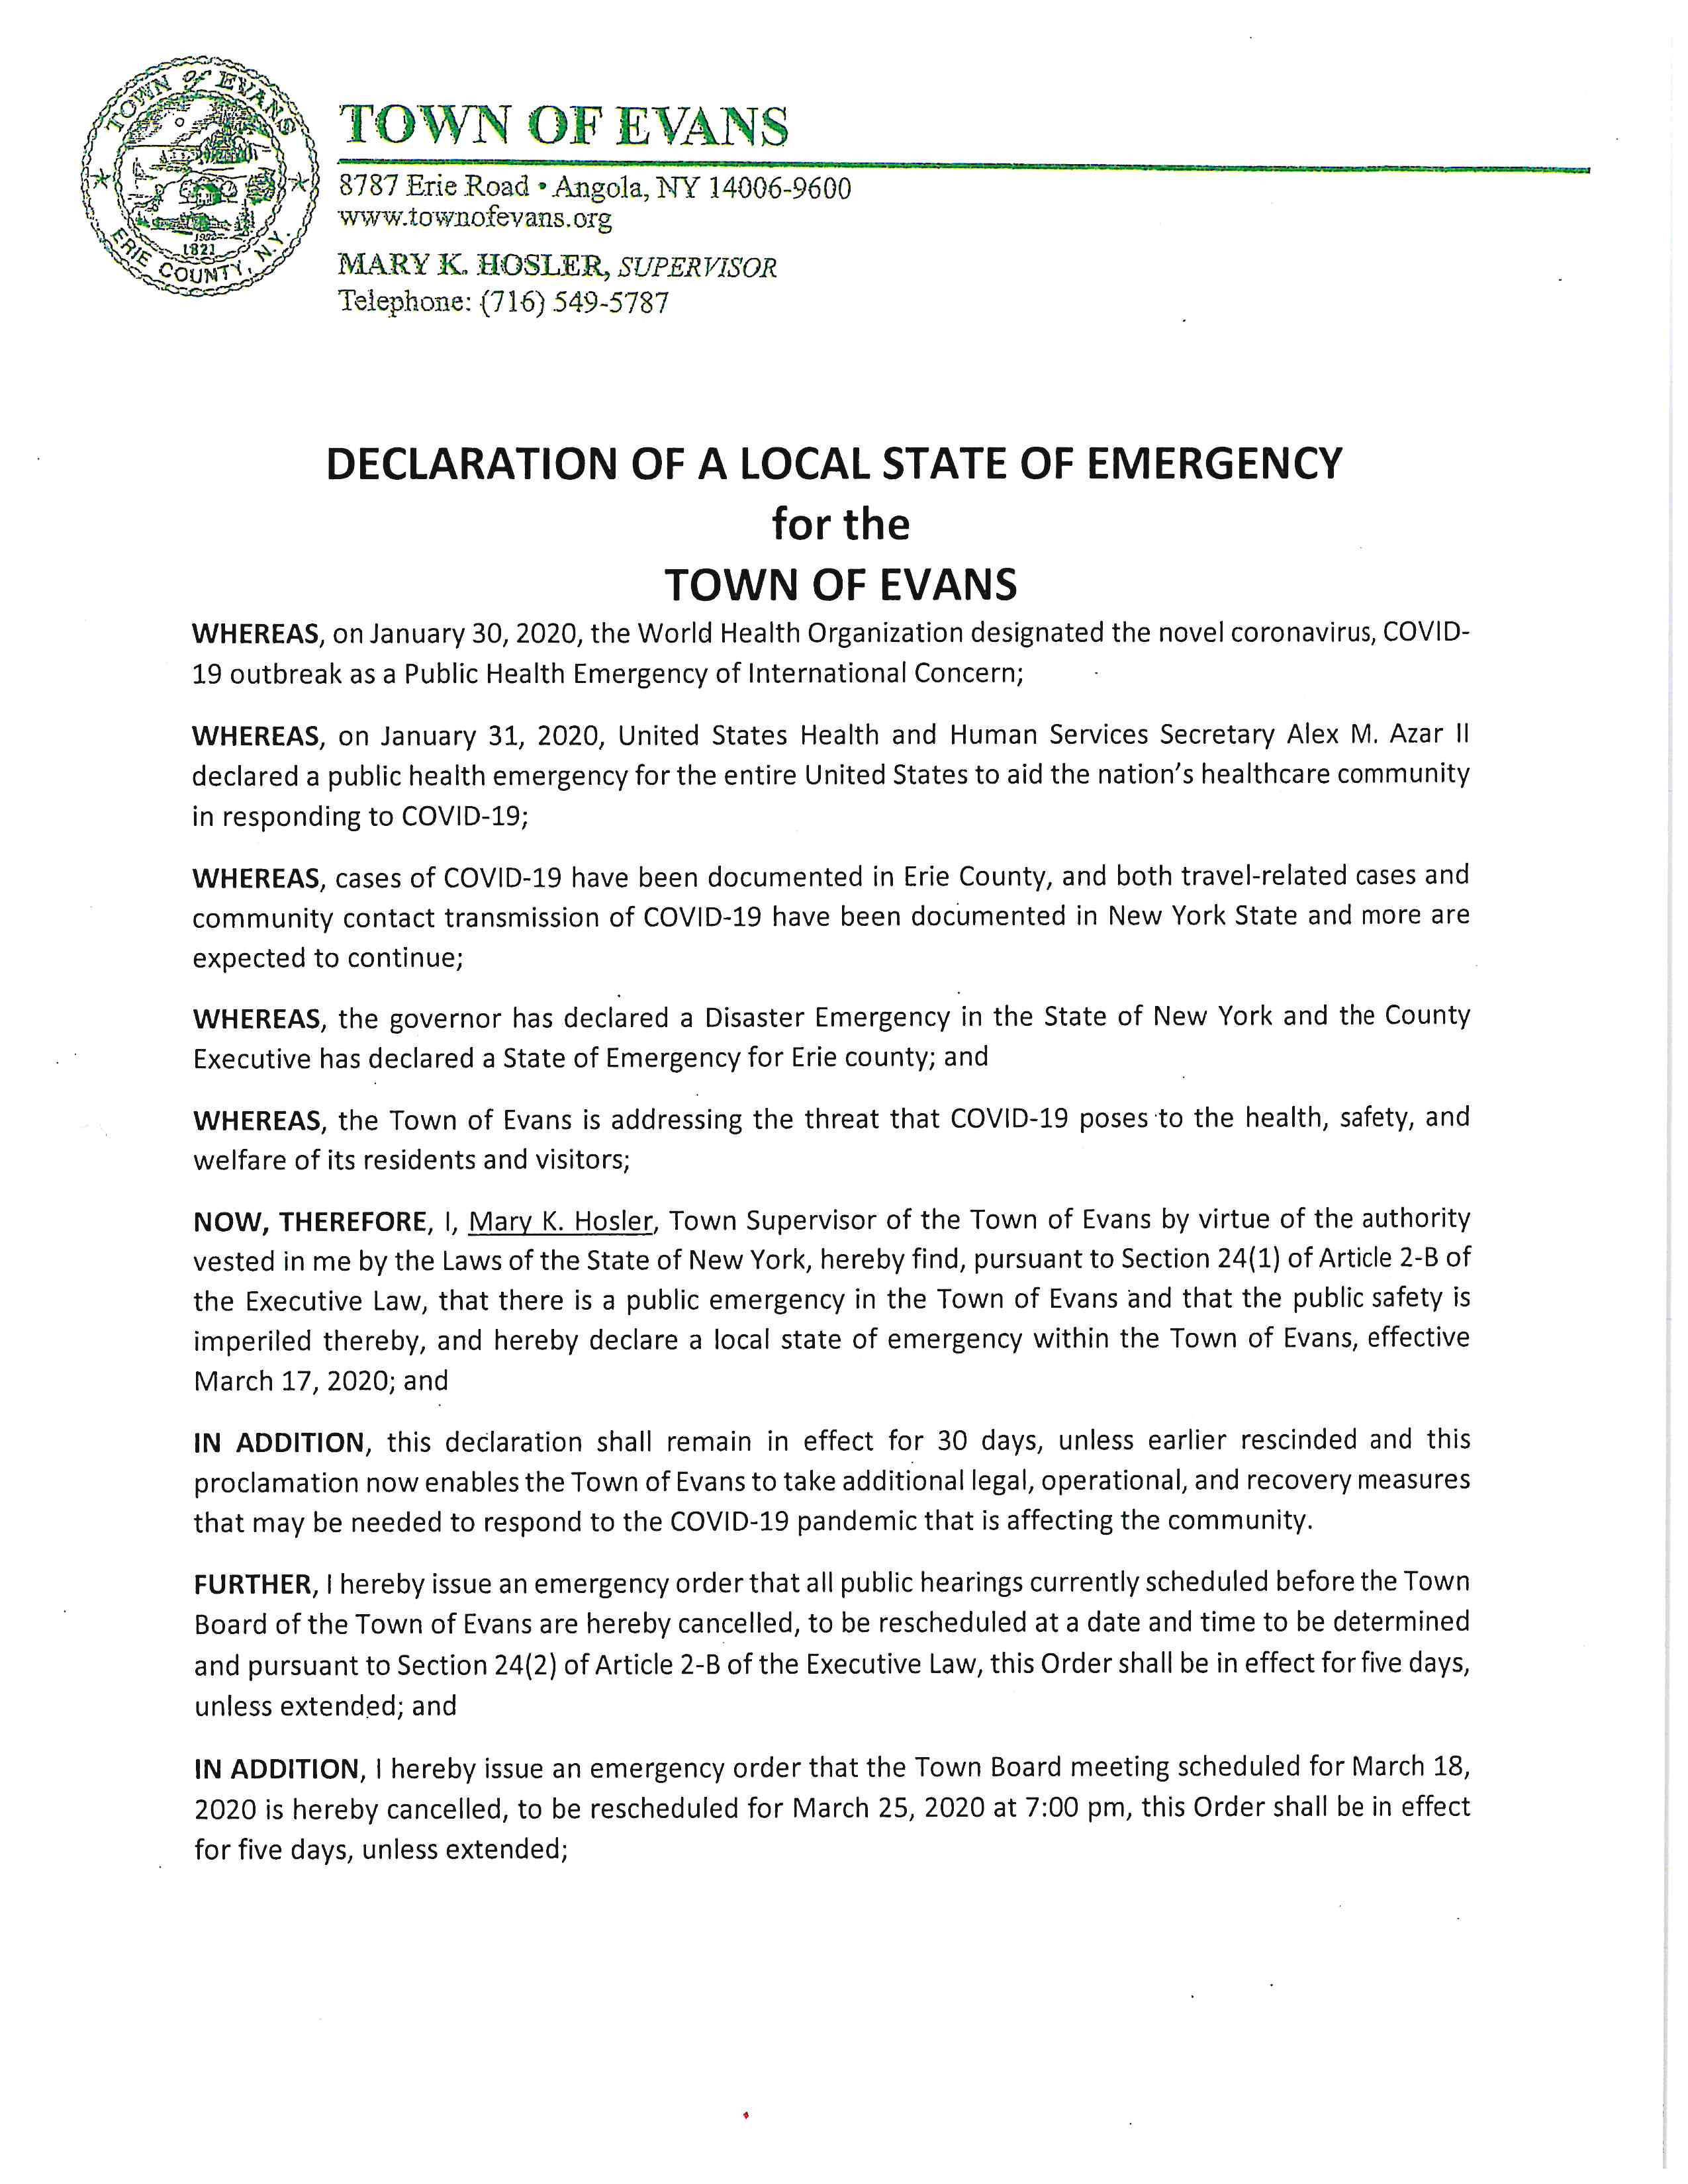 Pandemic State of Emergency Declaration 2020 03 17 pg 1